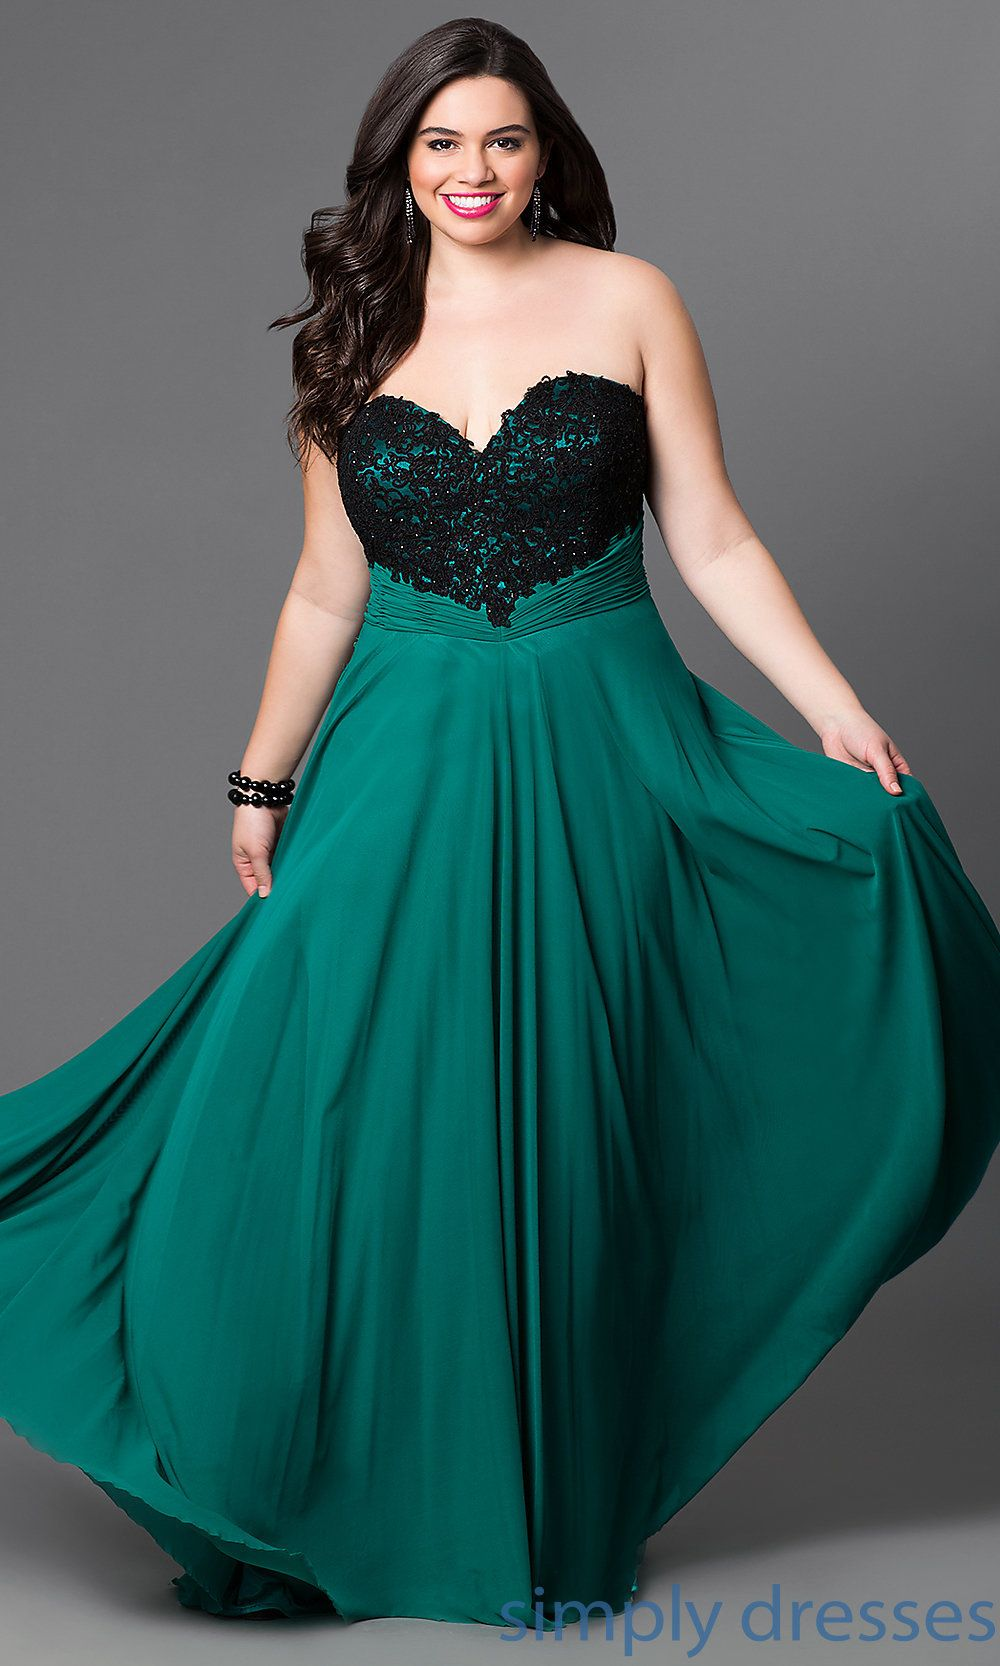 Homecoming Dresses, Formal Prom Dresses, Evening Wear: SC-SC7179 ...